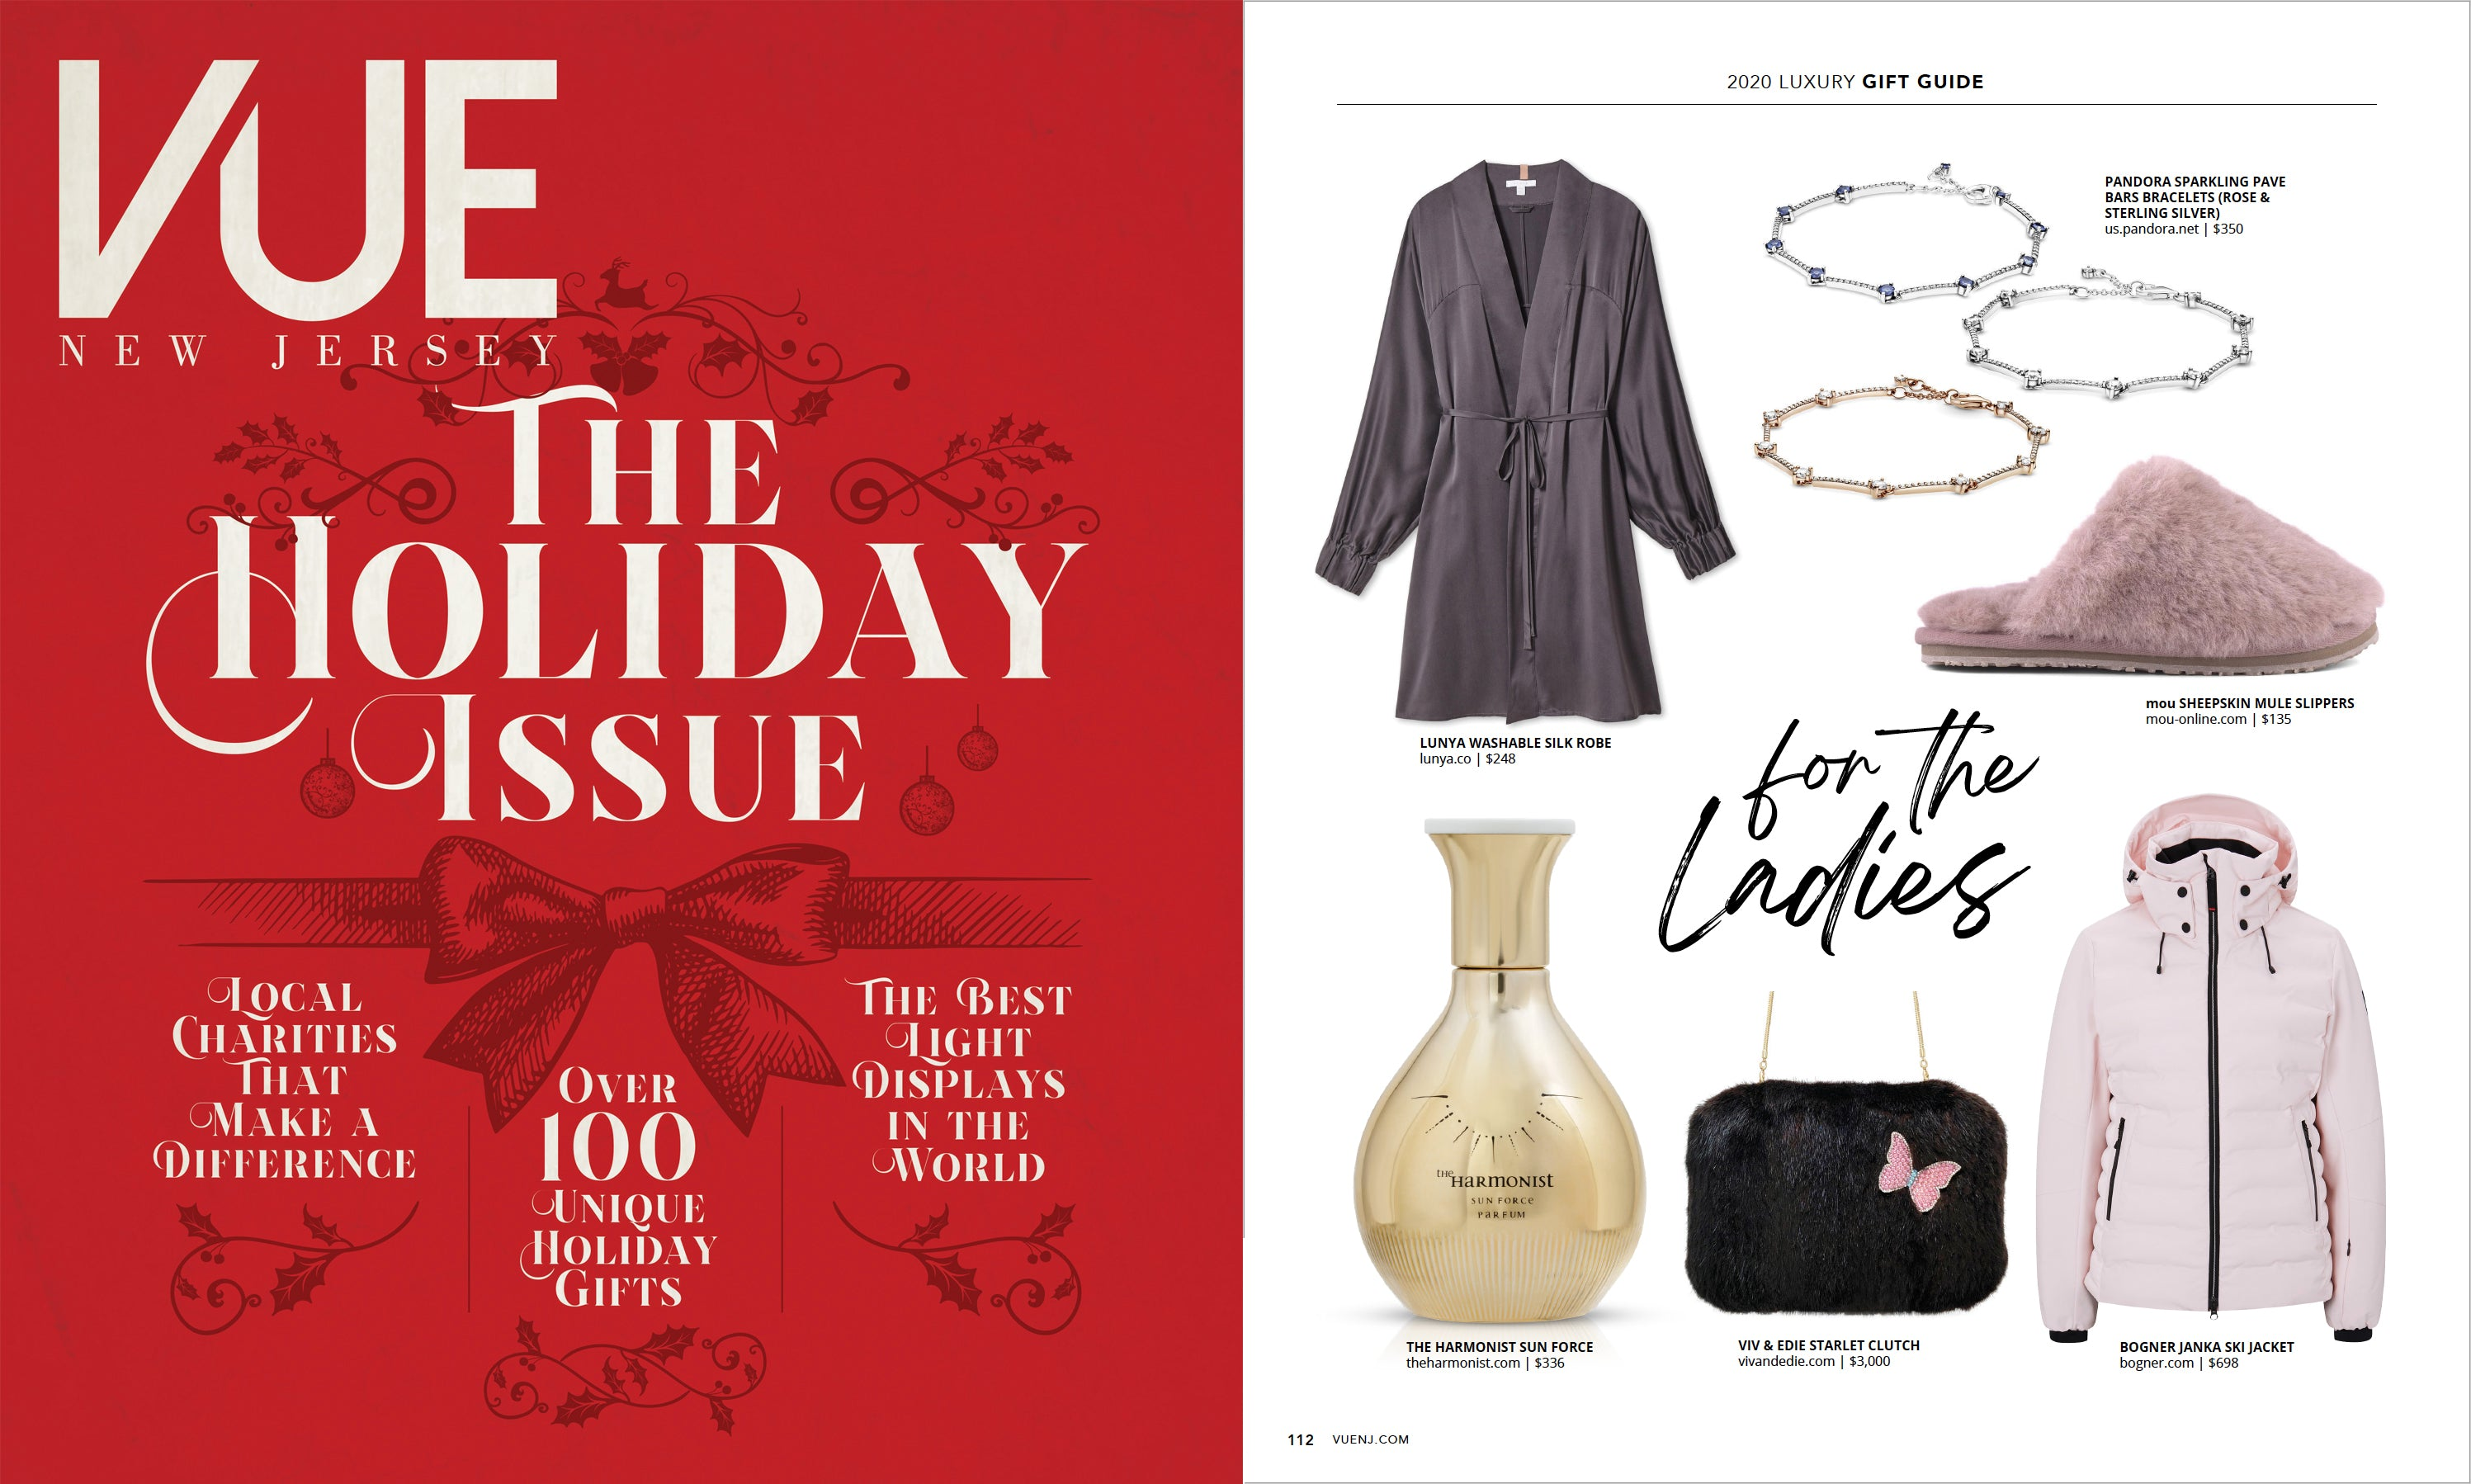 VUE New Jersey Magazine, Holiday 2020 issue